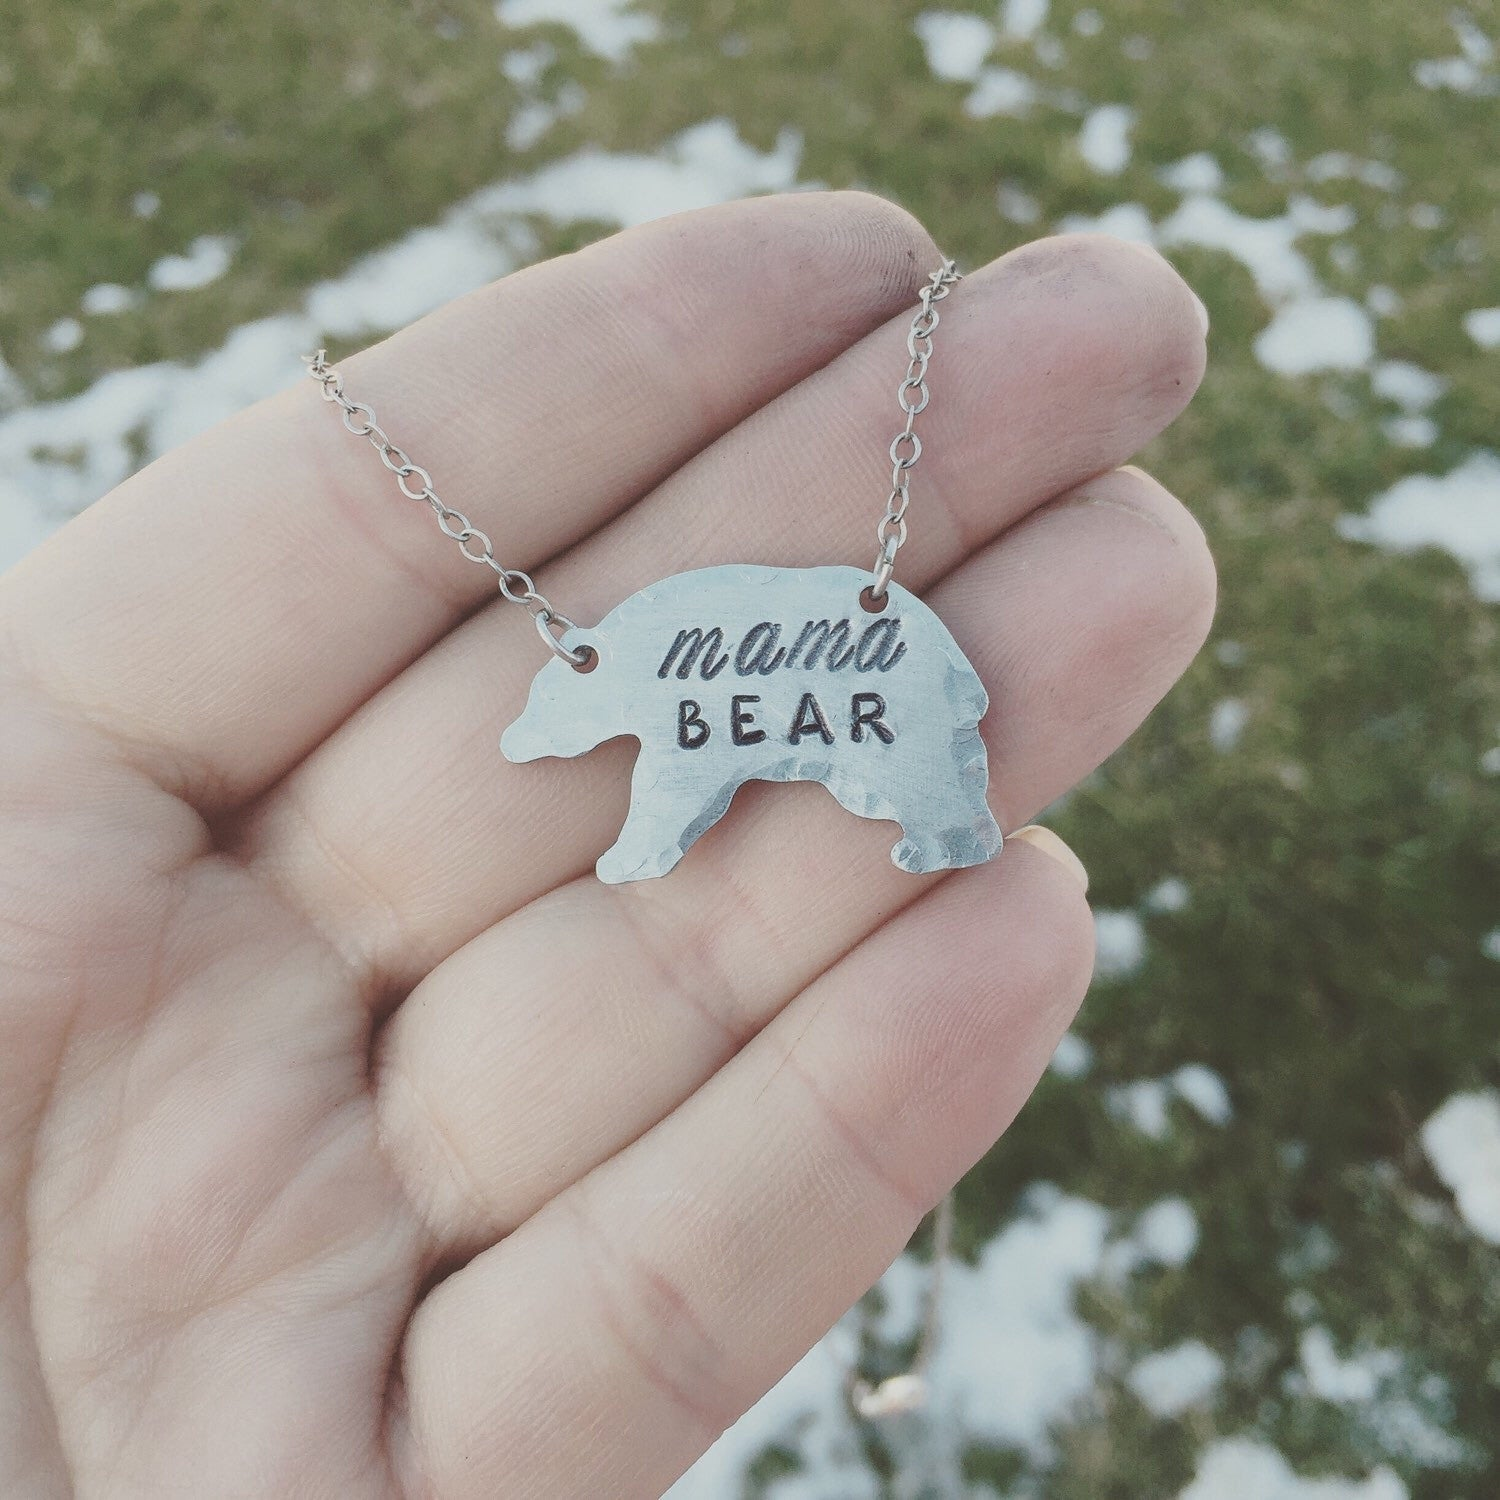 bar necklace am of screen at image shot bear rebekahgough mama product